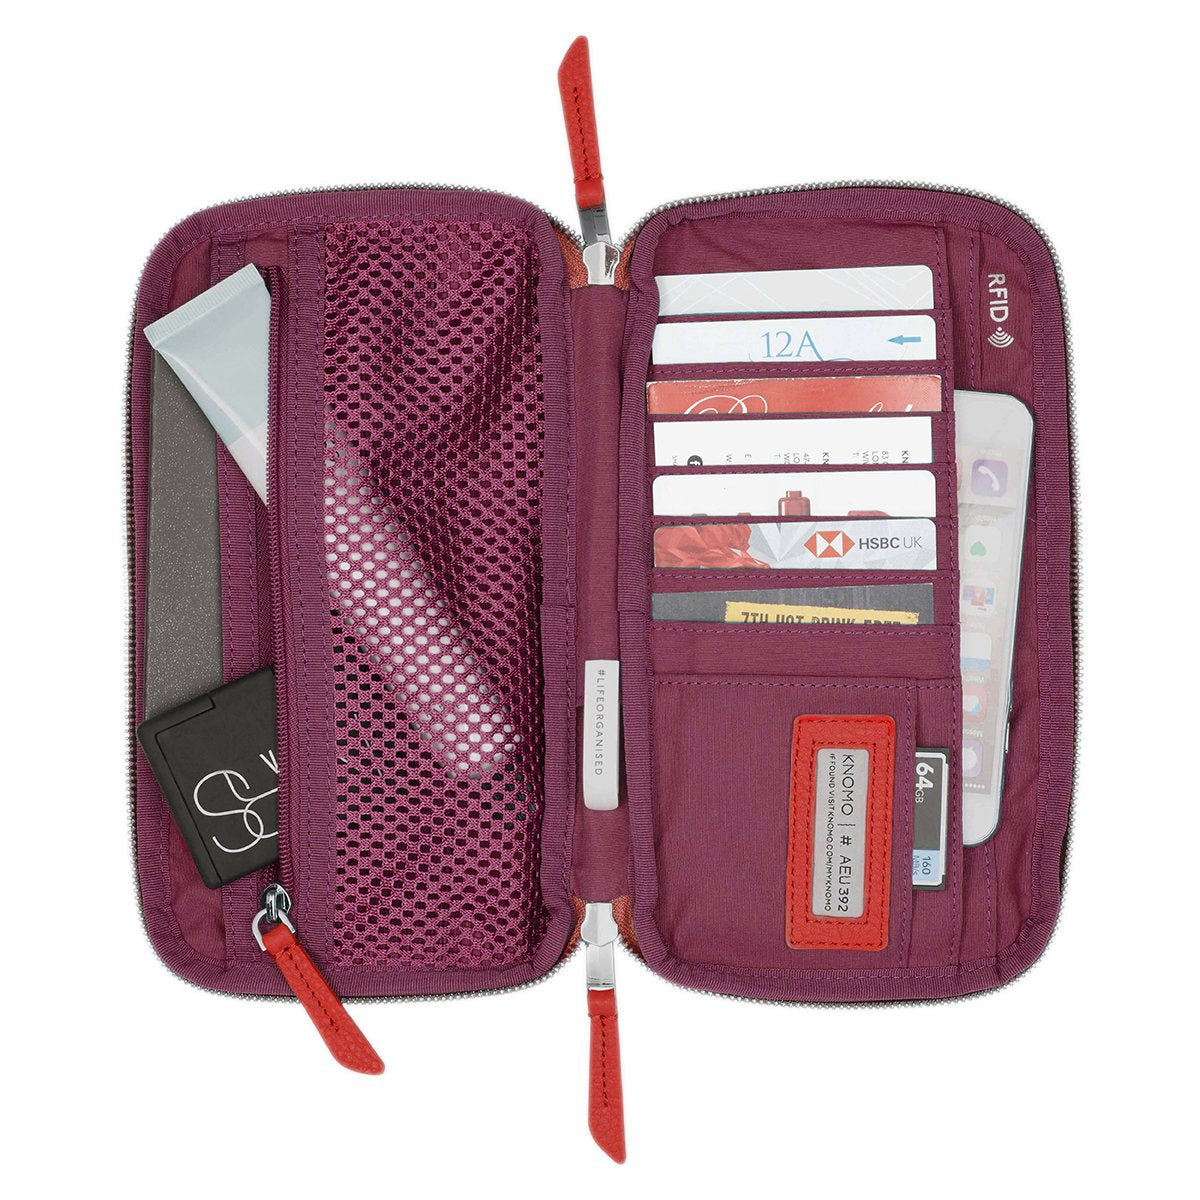 Organiser For Travel (Limited Edition)